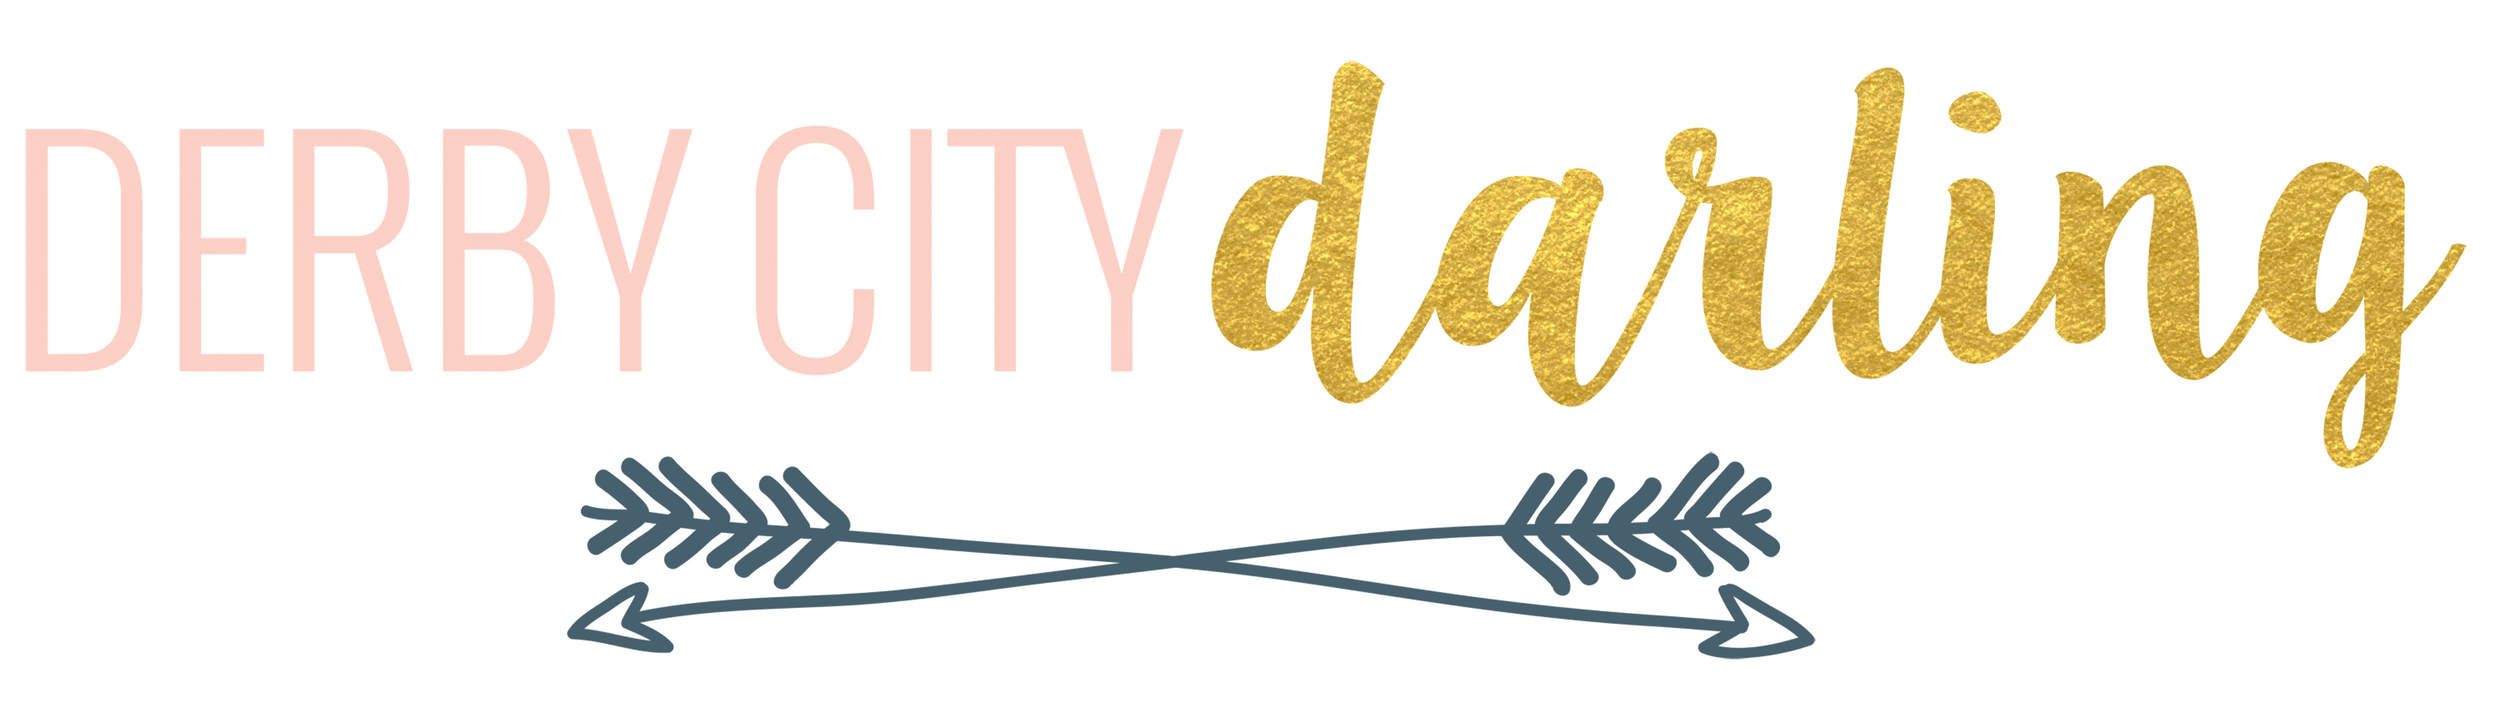 Derby City Darling logo design